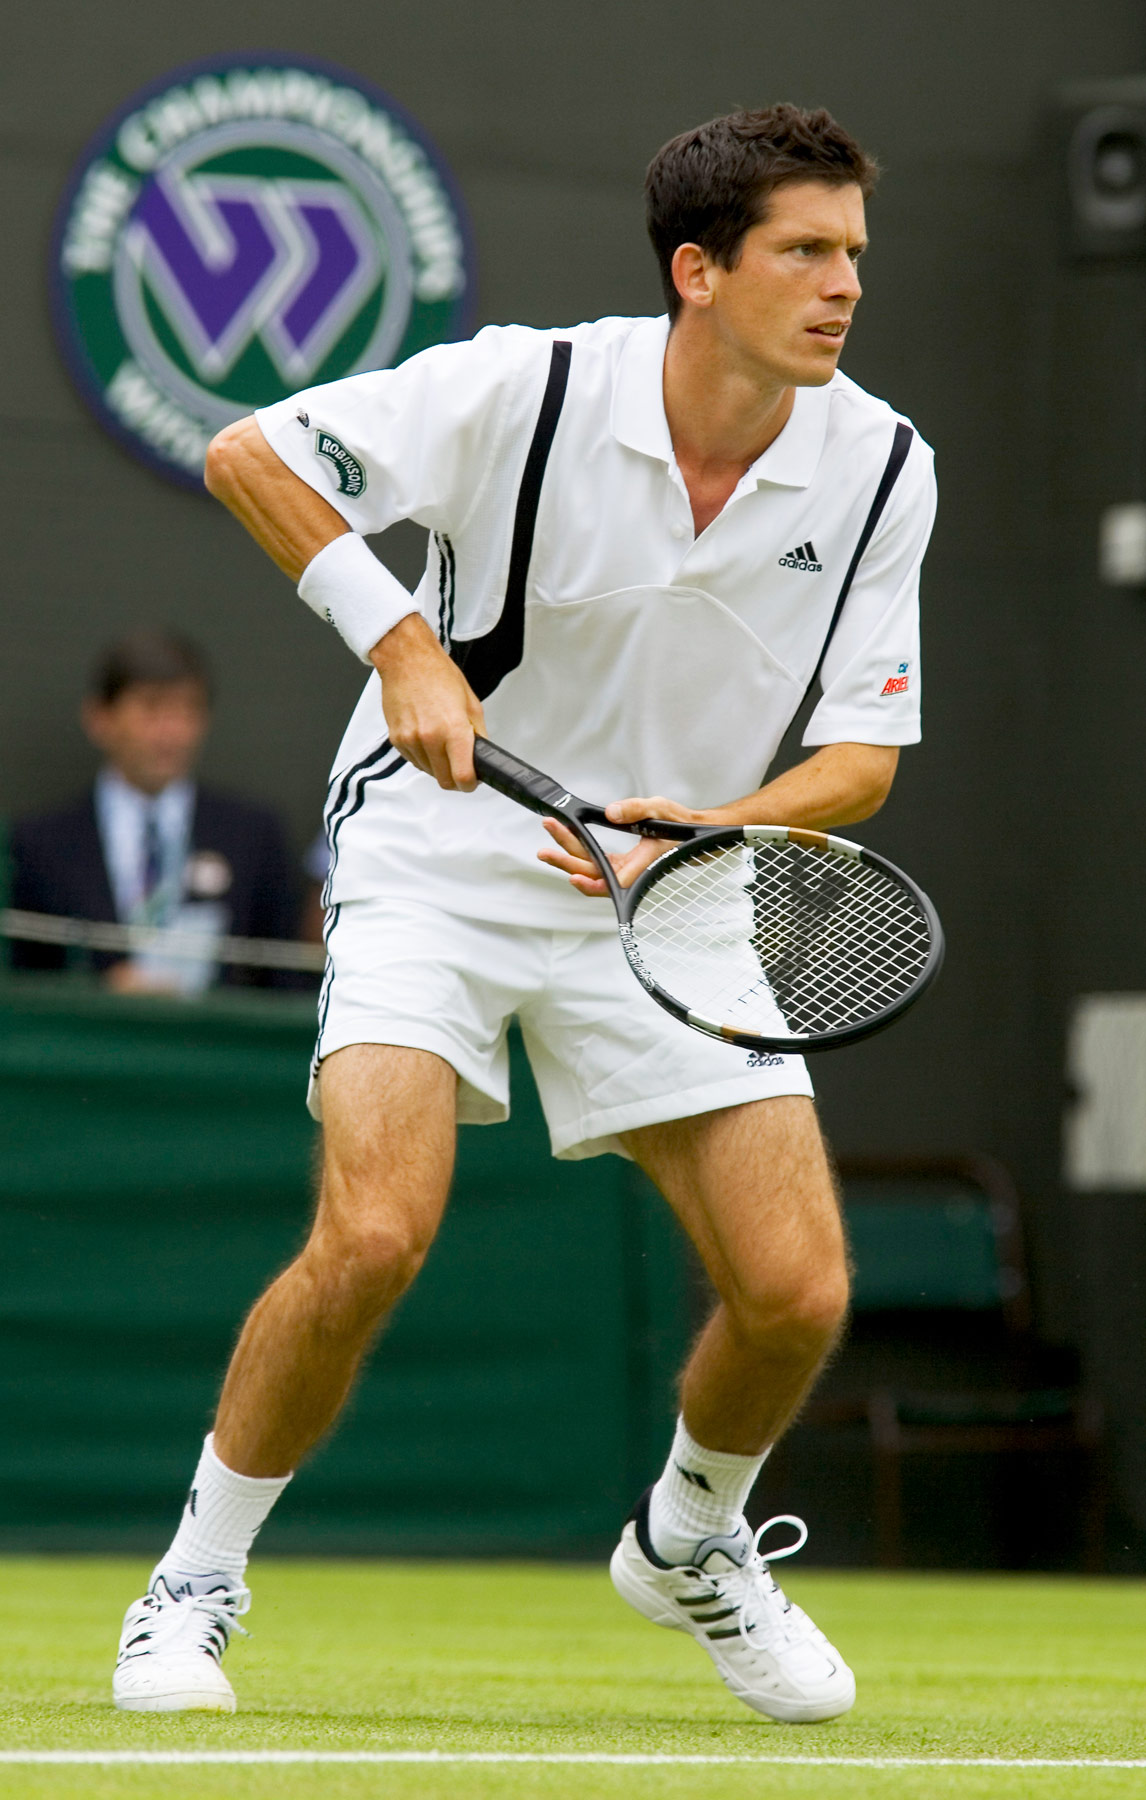 Tim Henman playing at Wimbledon